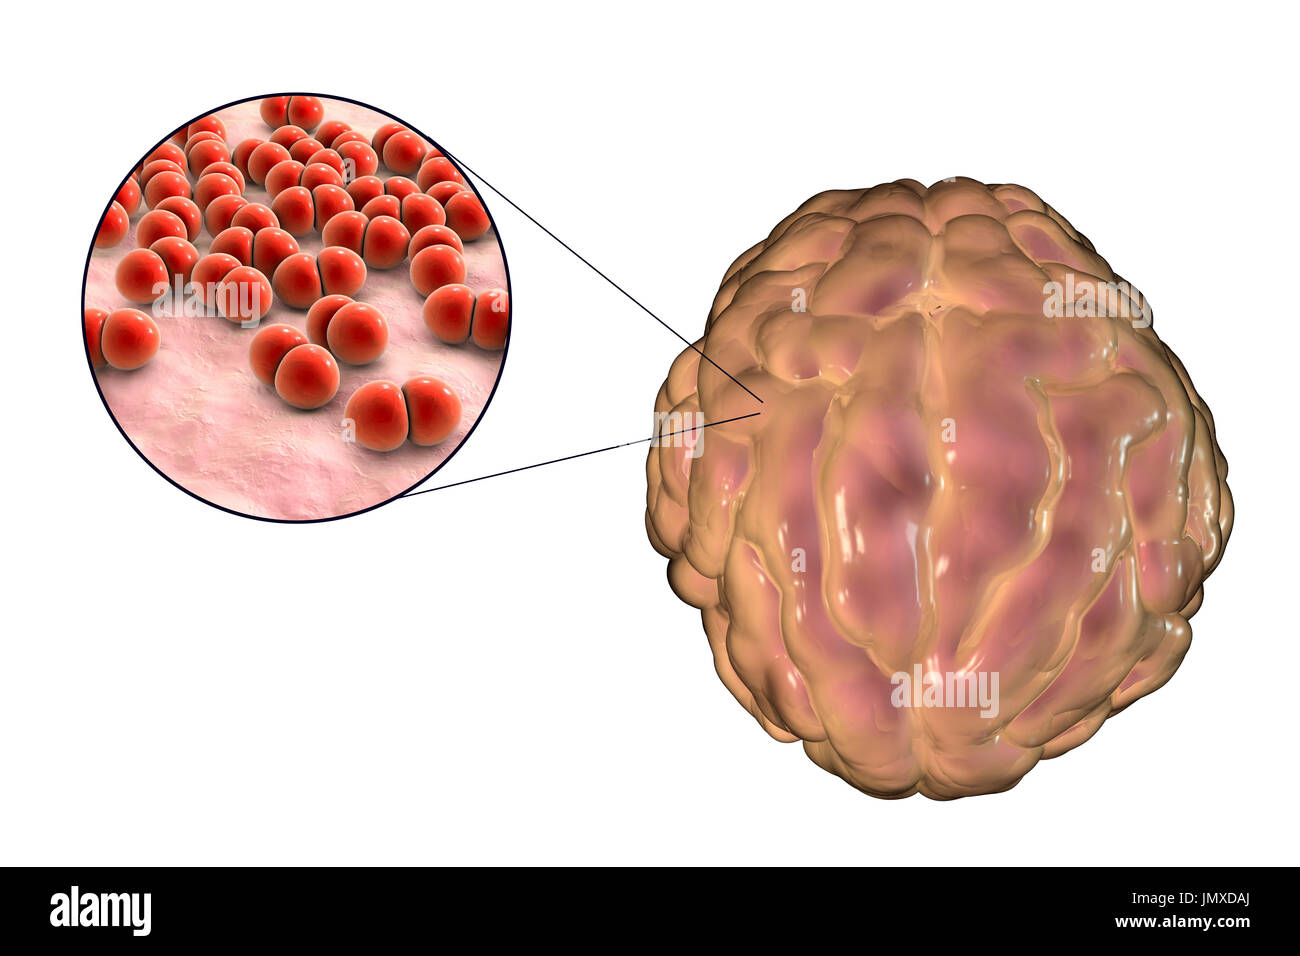 Meningitis caused by the bacterium Streptococcus pneumoniae, computer illustration. The illustration shows swelling of meninges and close-up view of bacteria S. pneumoniae. - Stock Image